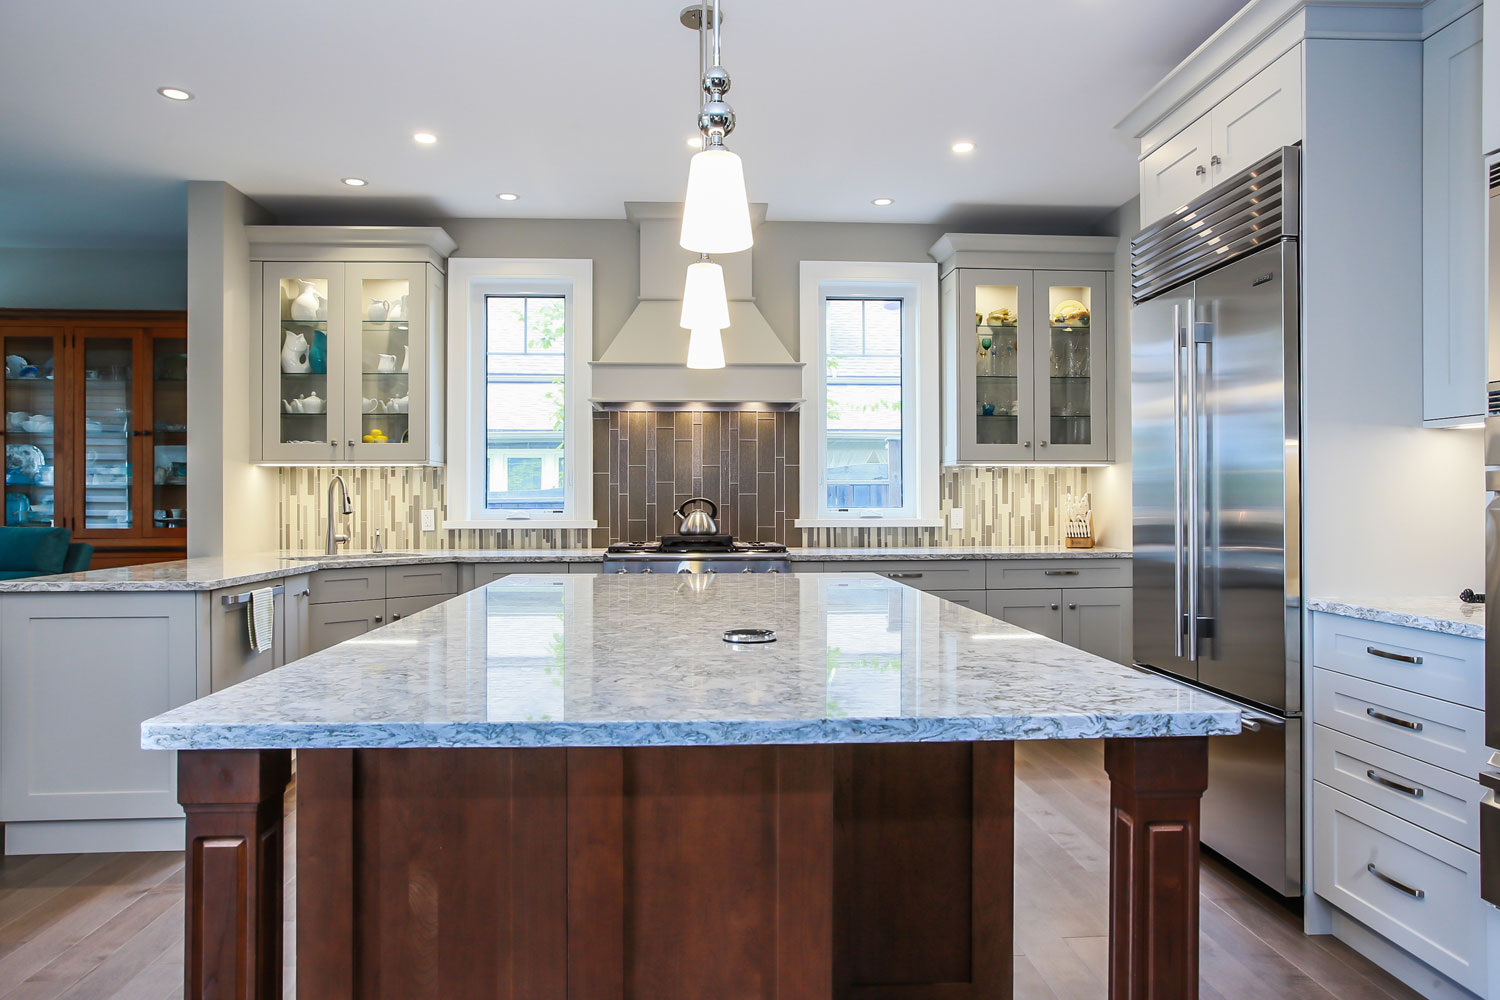 large kitchen island with granite coutertops